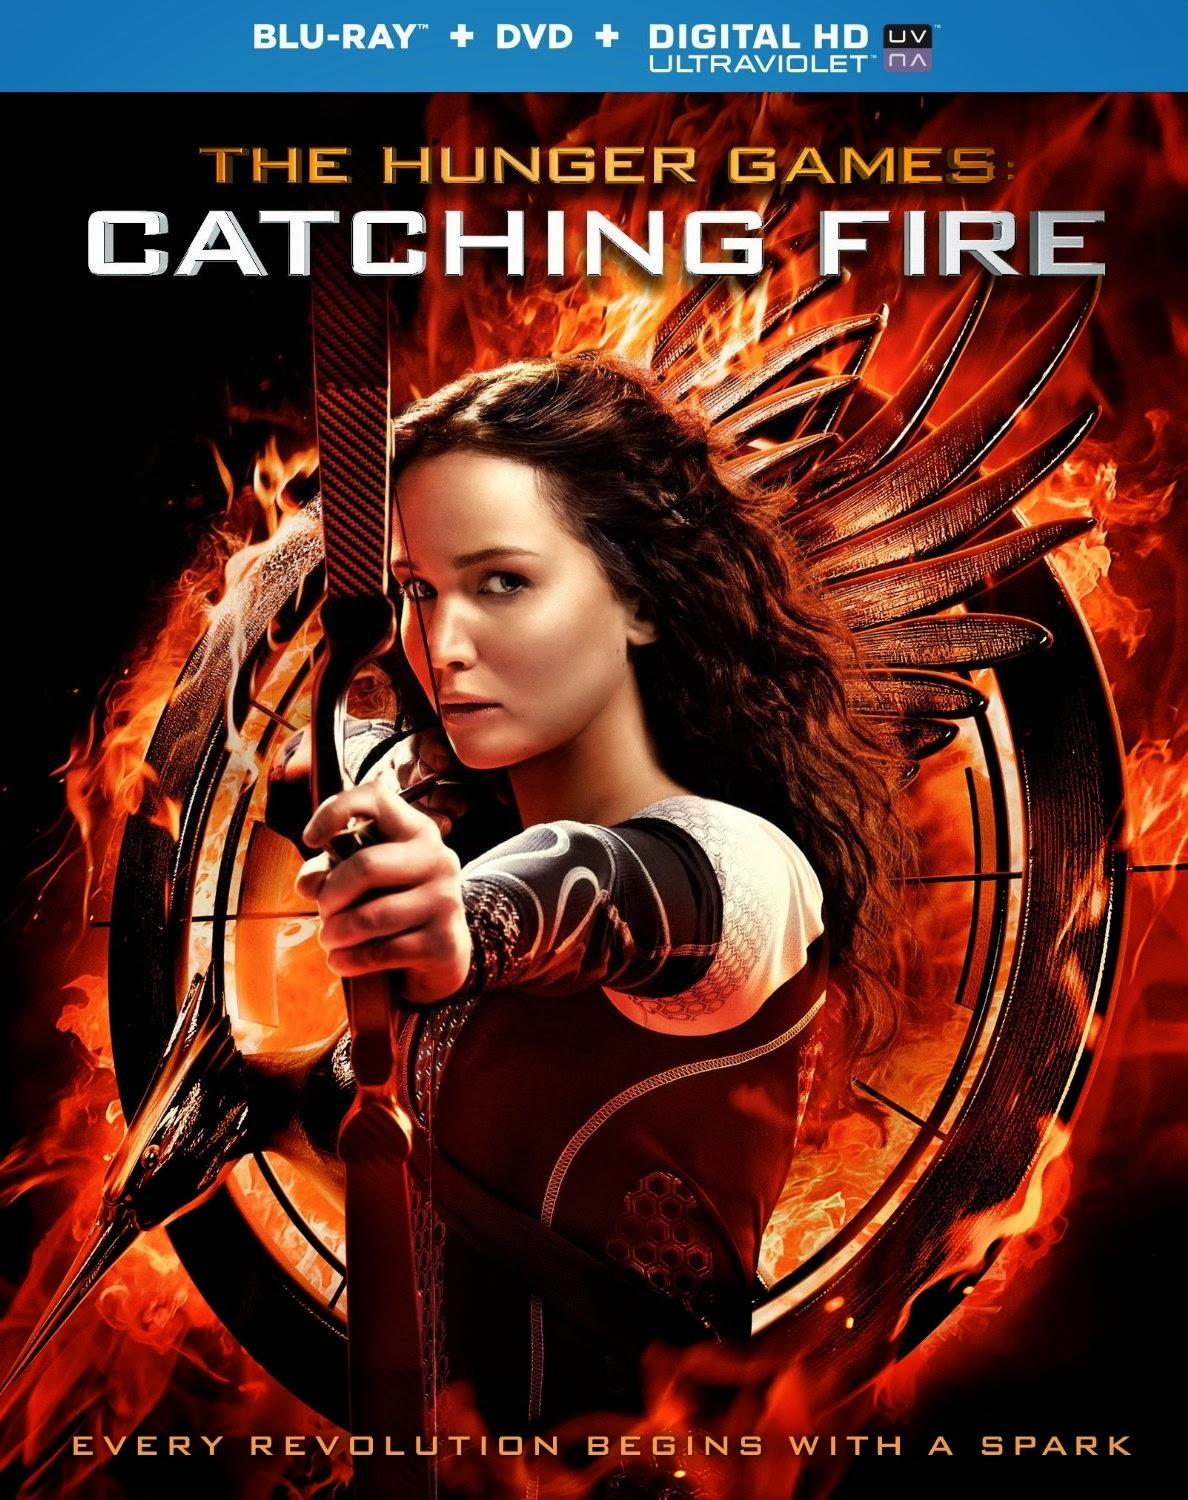 download full movies The Hunger Games : Catching Fire BLURAY avi mkv 720p SUb Indo